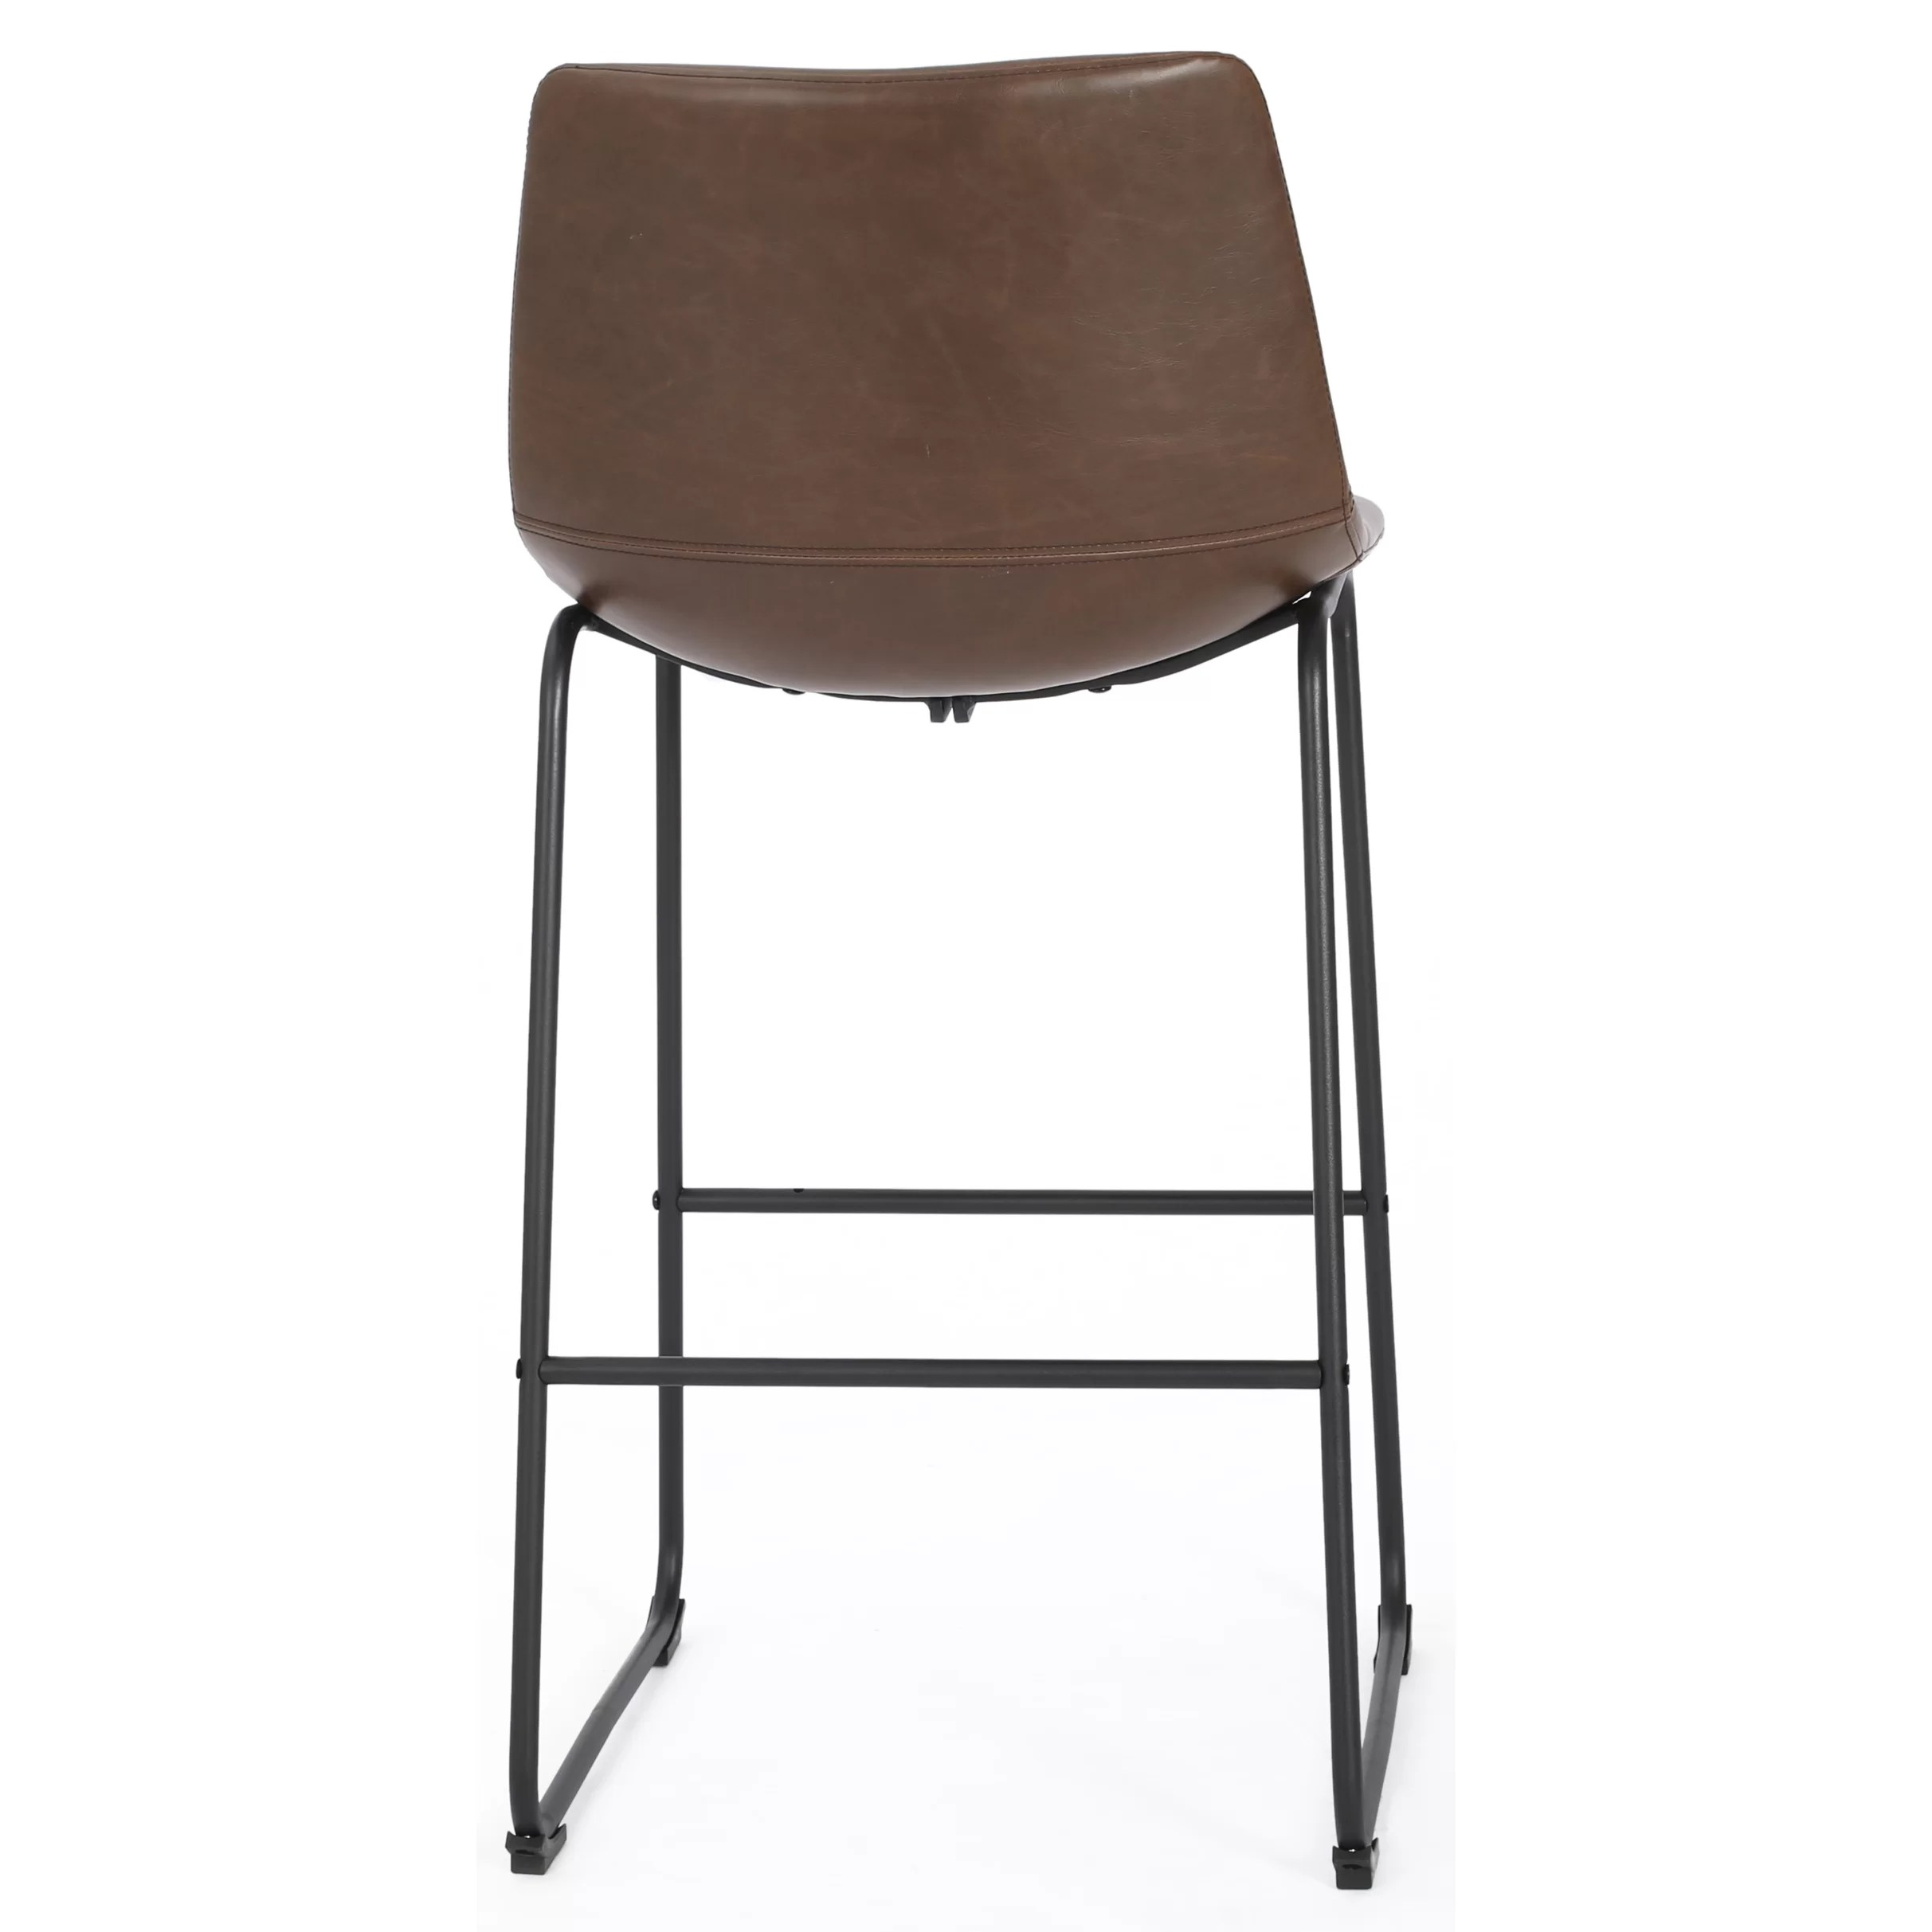 Bar And Stools For Home Home Loft Concepts 24 Quot Bar Stool Wayfair